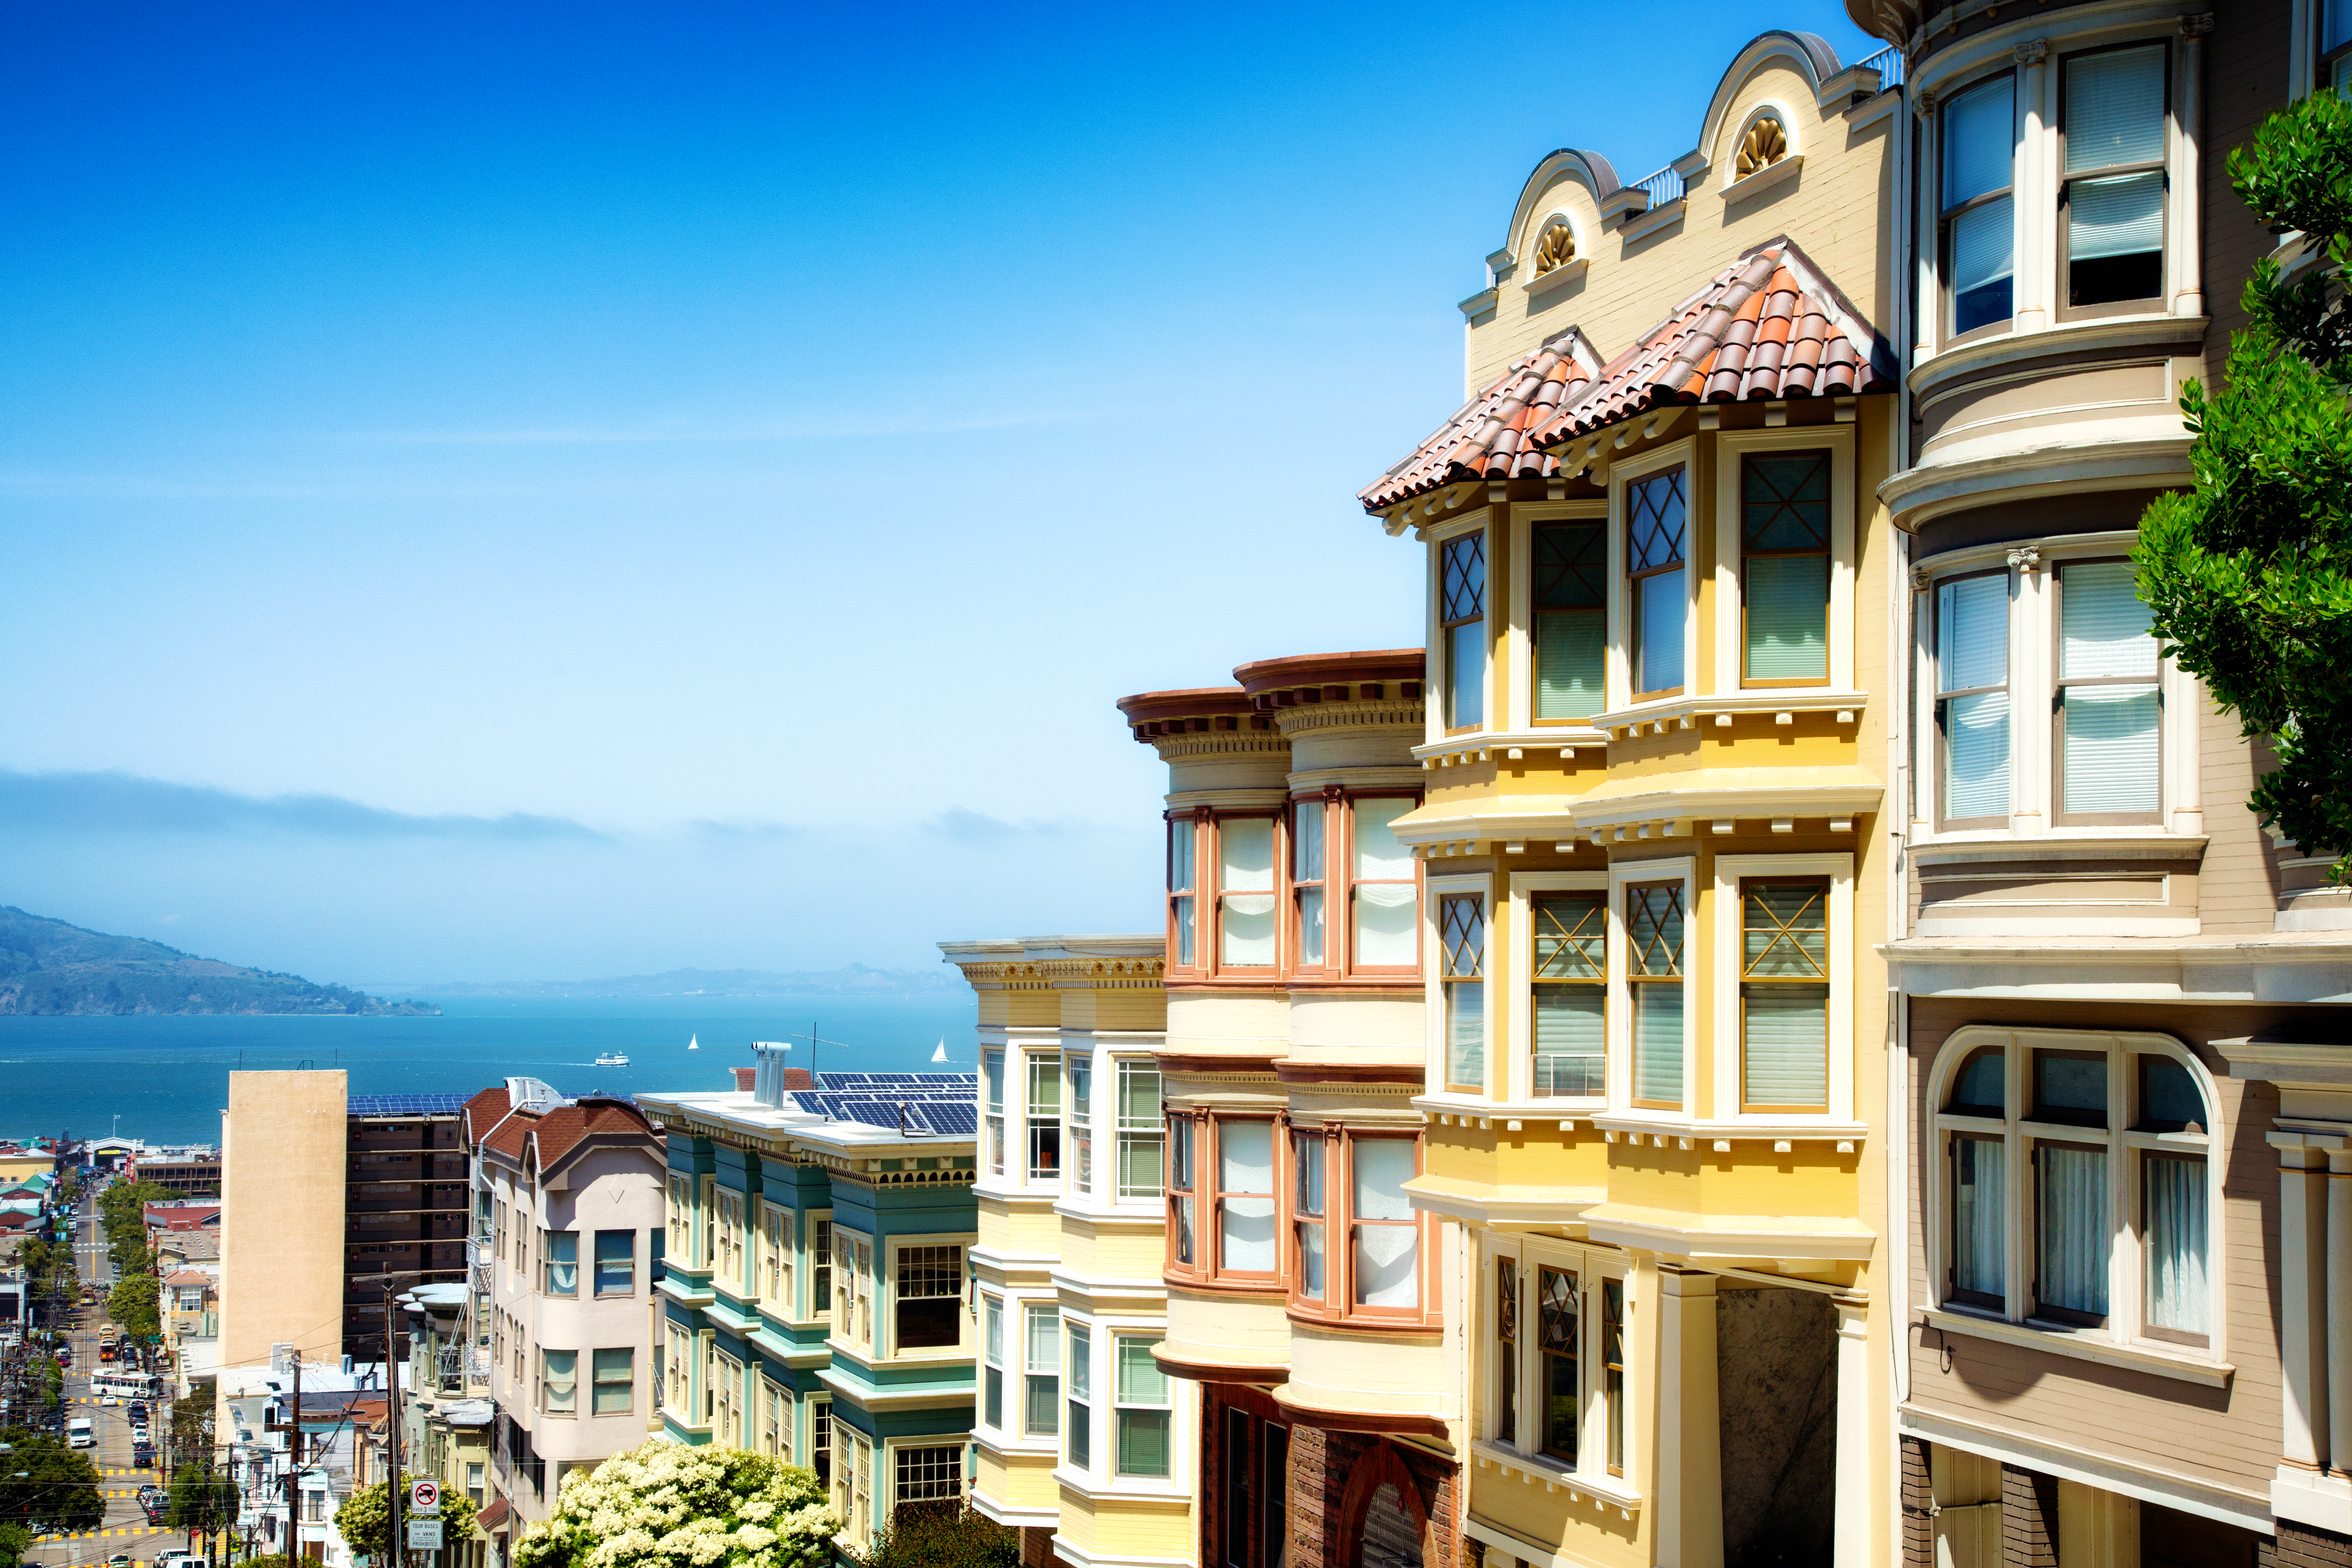 Colorful San Francisco building tops with Bay Sunny day